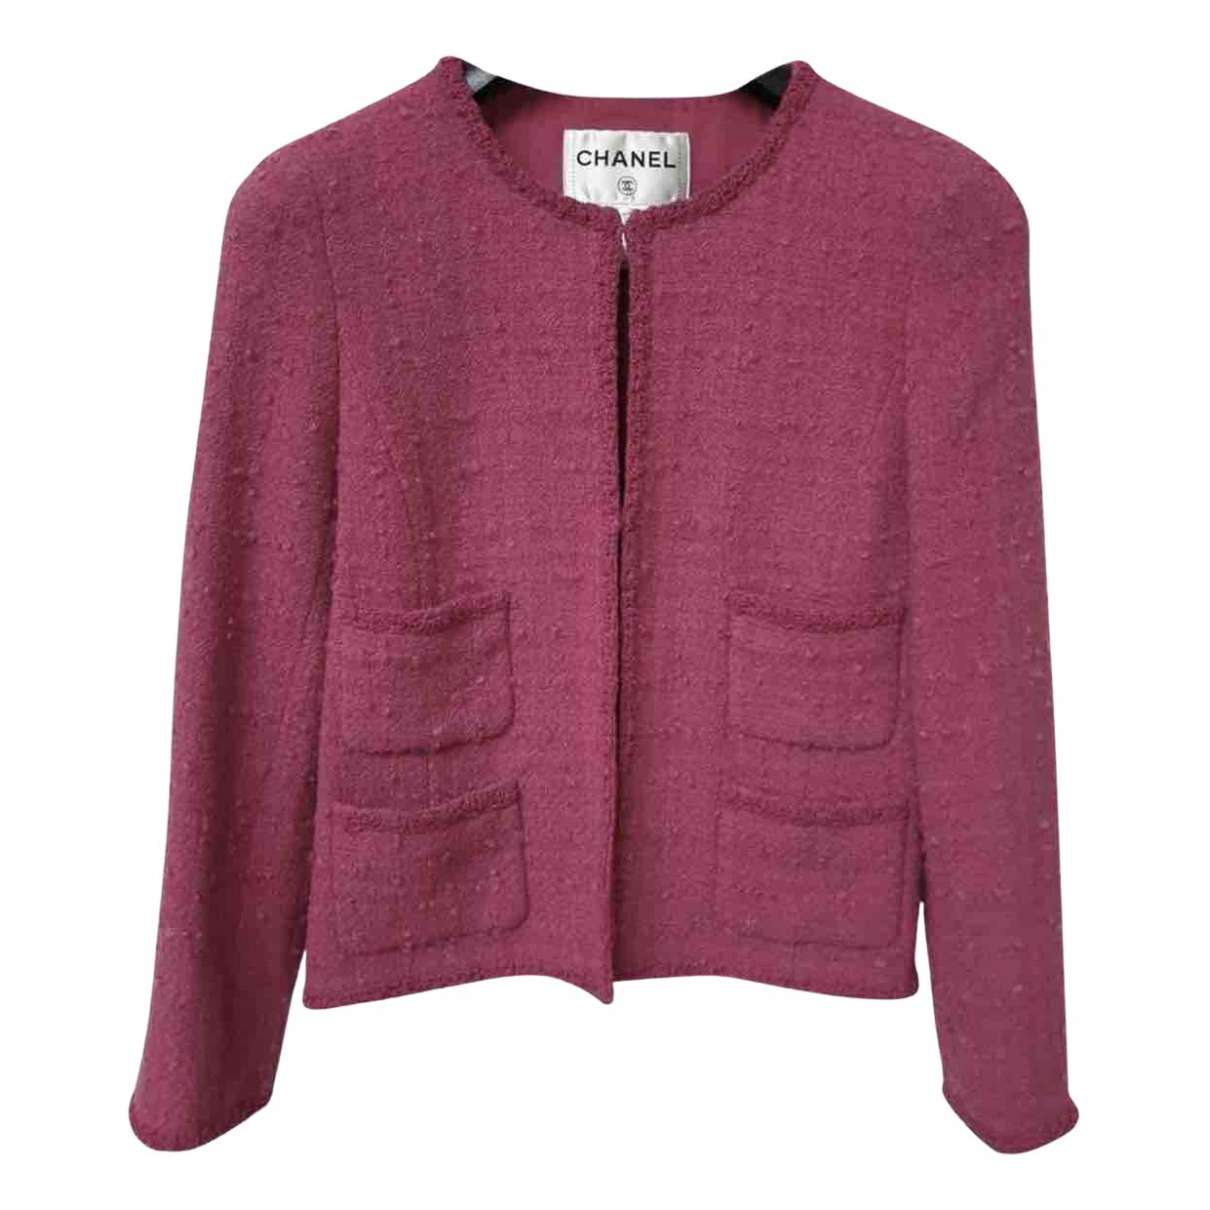 Chanel \N Jacke in  Rosa Tweed